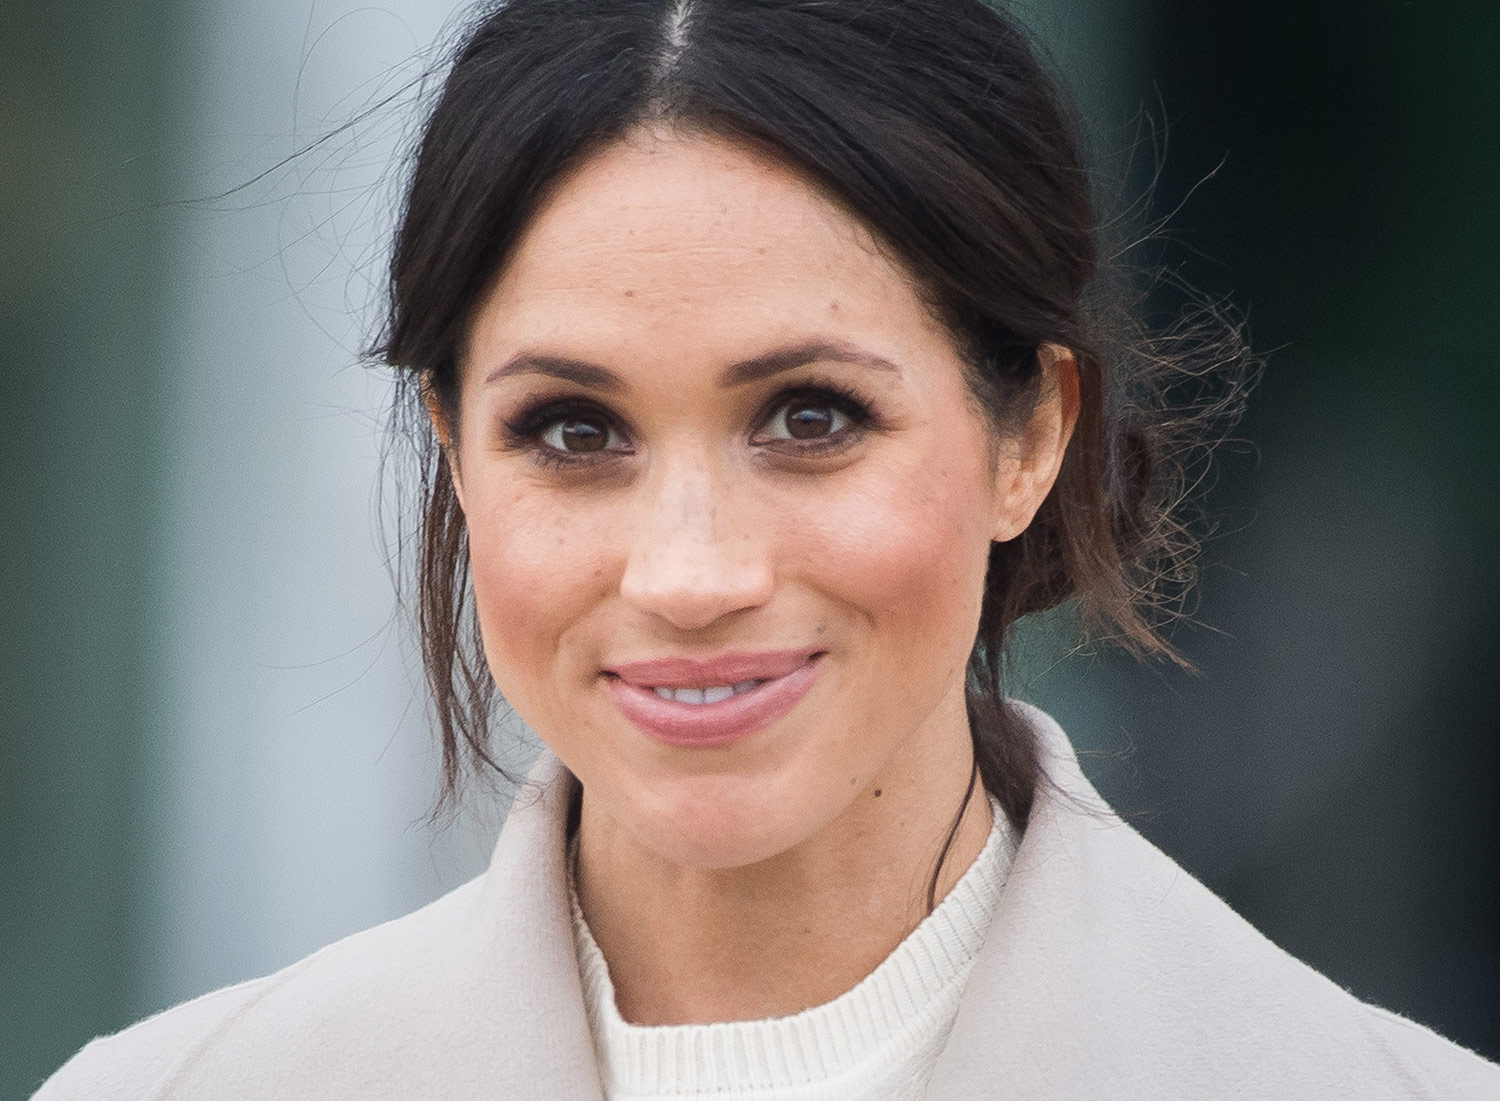 I Tried Meghan Markle's Facial Massage And My Face Will